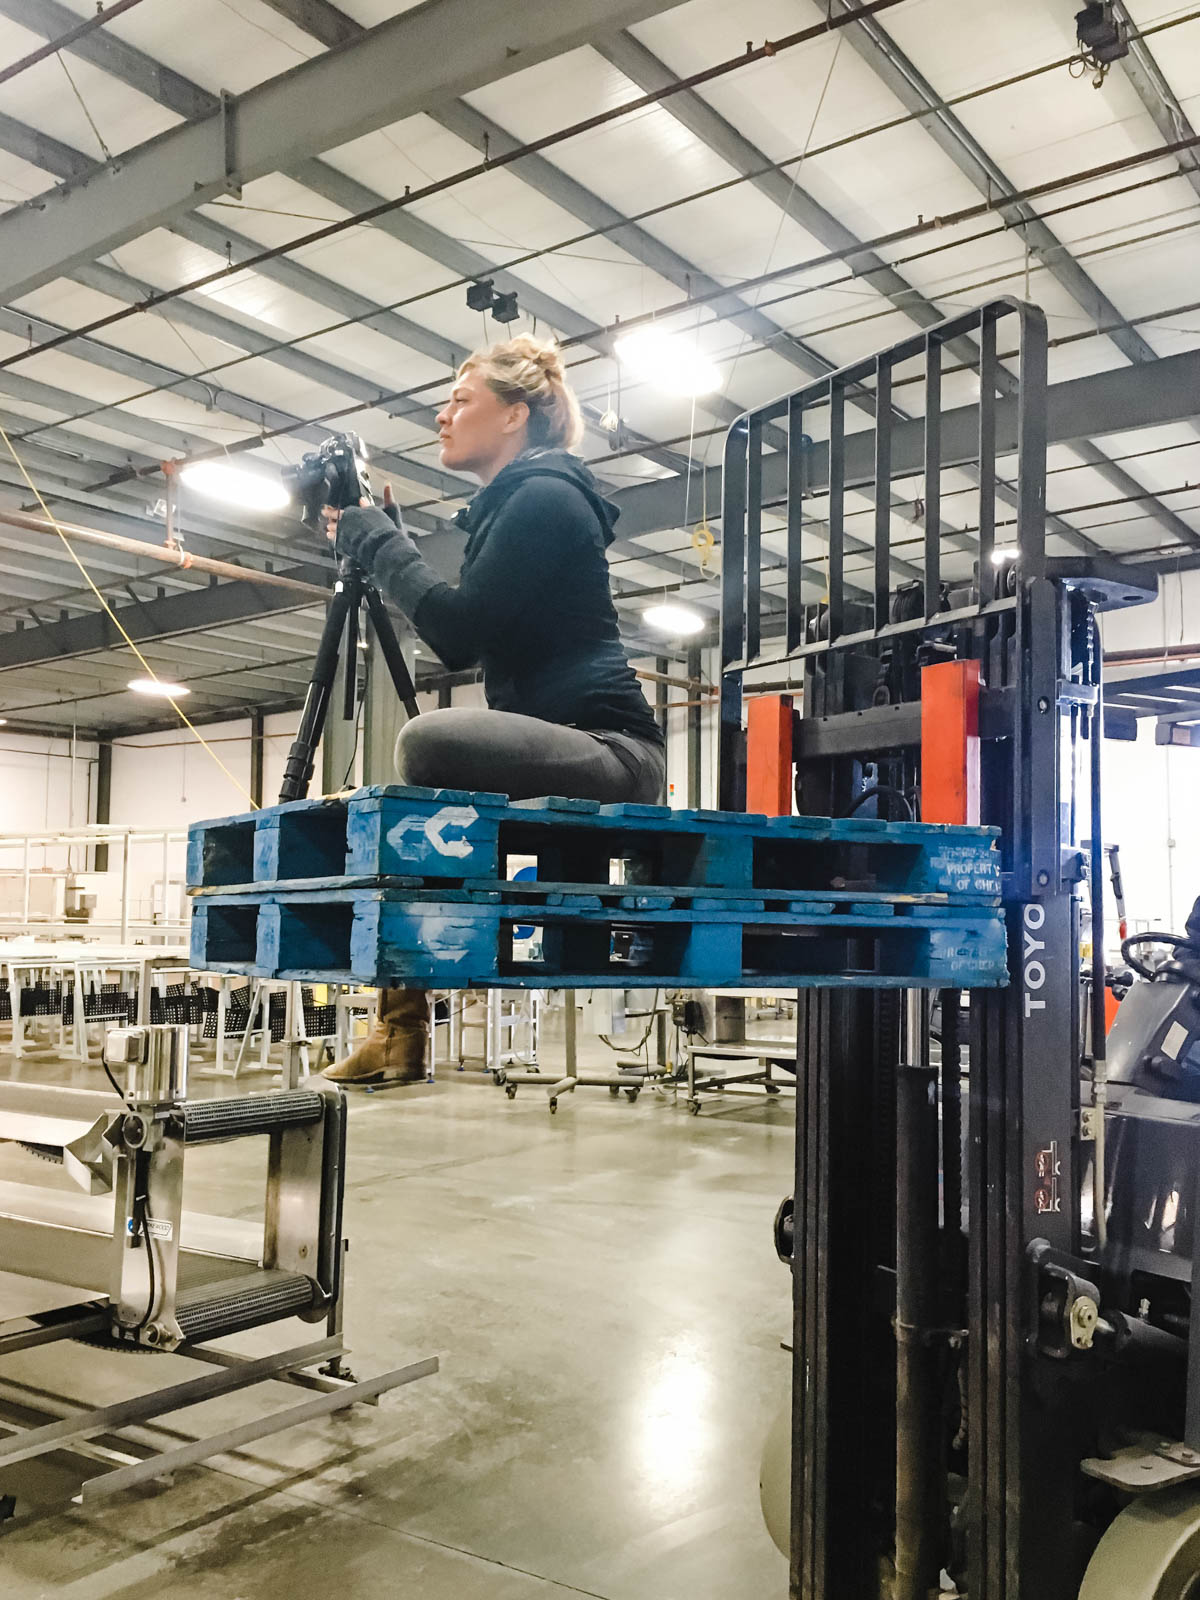 Dawn Heumann, Commercial Photographer on fork lift